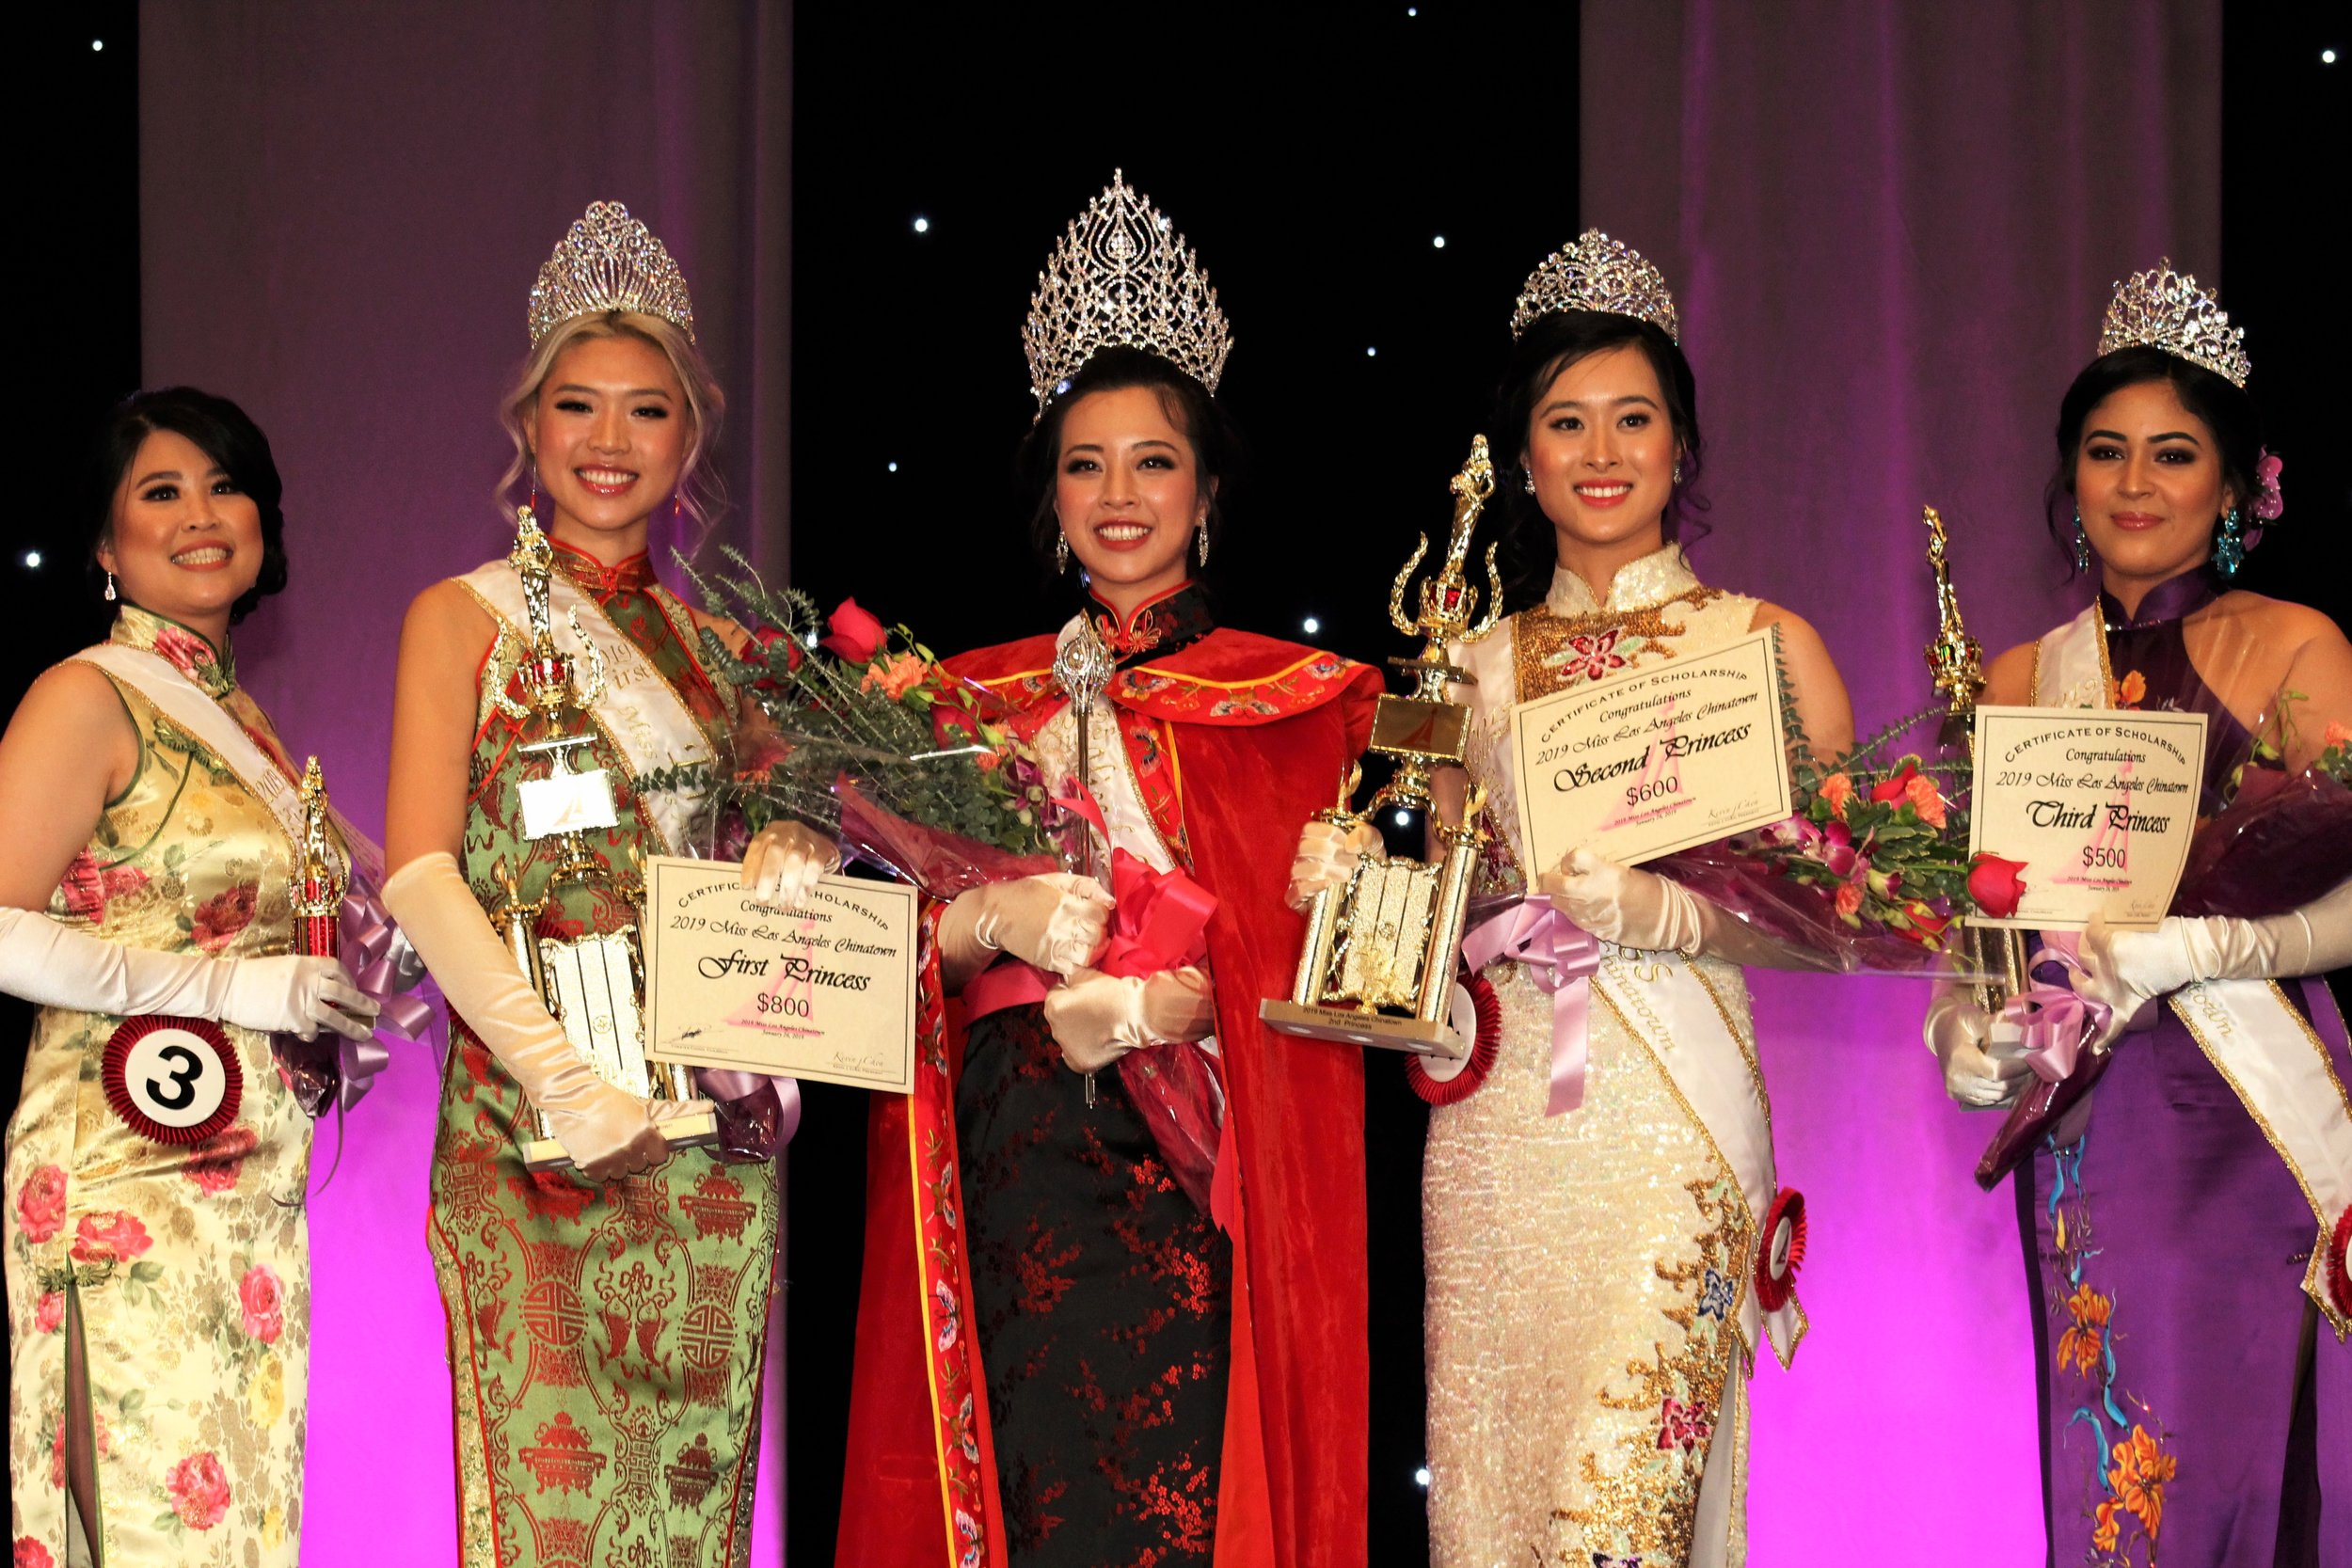 From left to right:  Miss Friendship Barbara Wong, First Princess Isabell Liu, Queen & Miss Photogenic Kellie Chin, Second Princess Sela Wang, and Third Princess Ashley Thompson